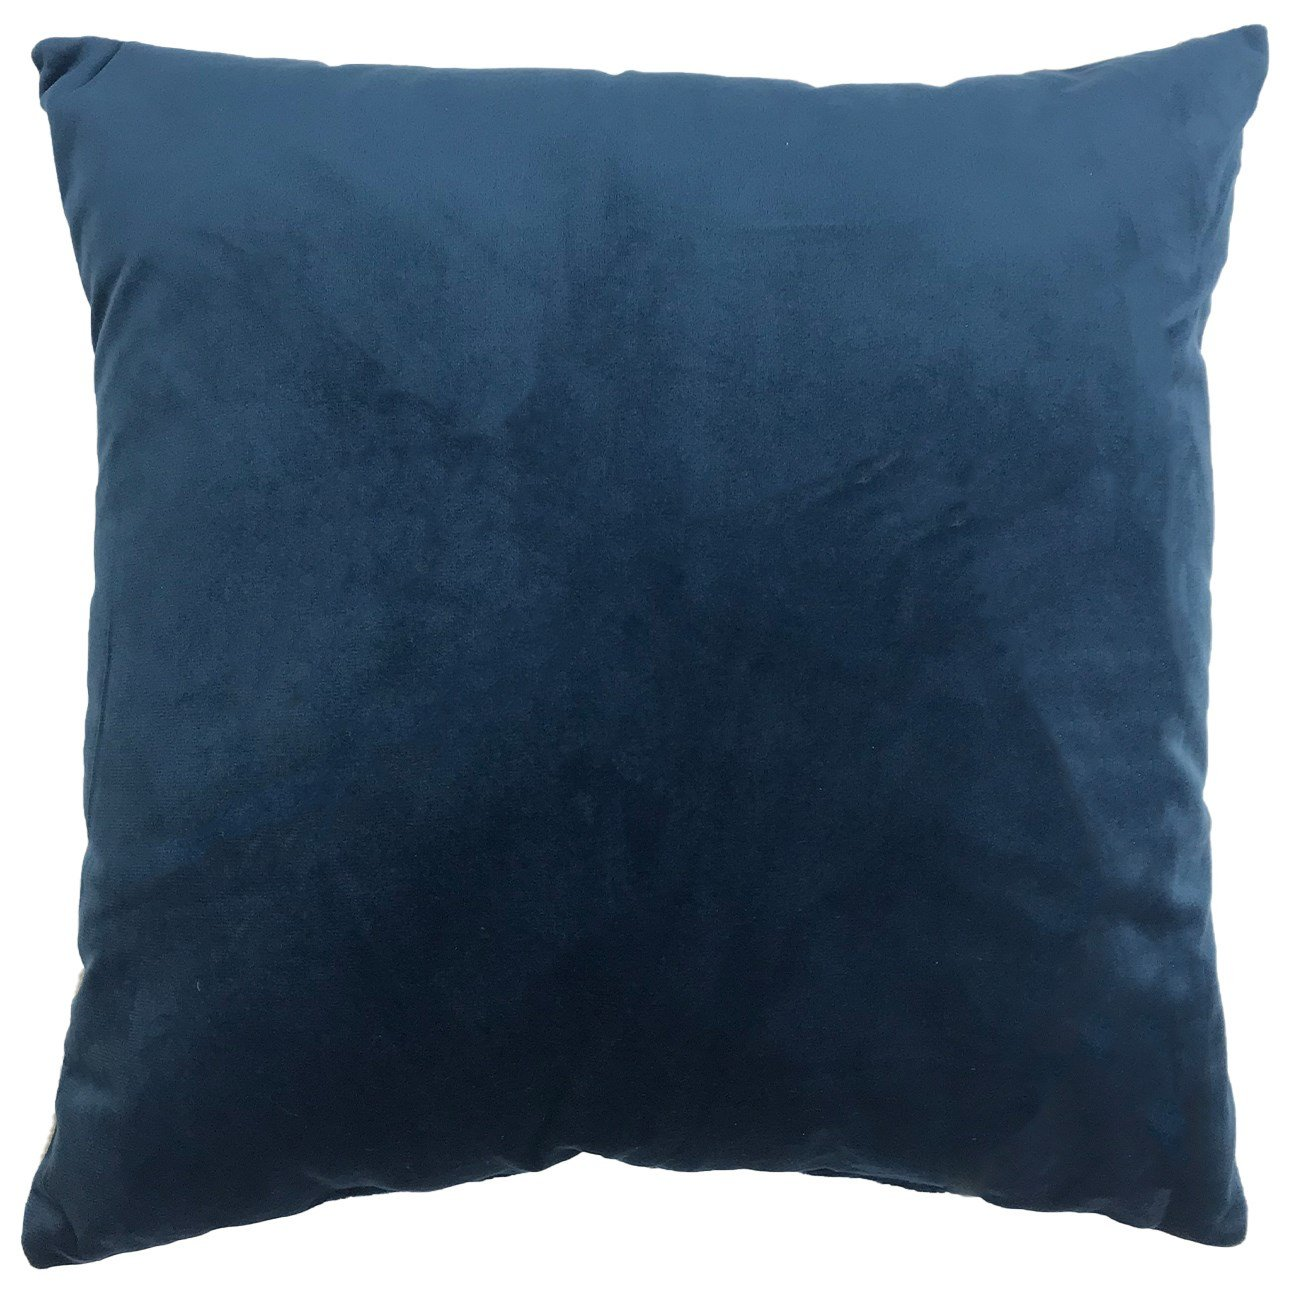 "18"" x 18"" Cotton Velvet Front with linen reverse. Removable feather insert. $29.99"